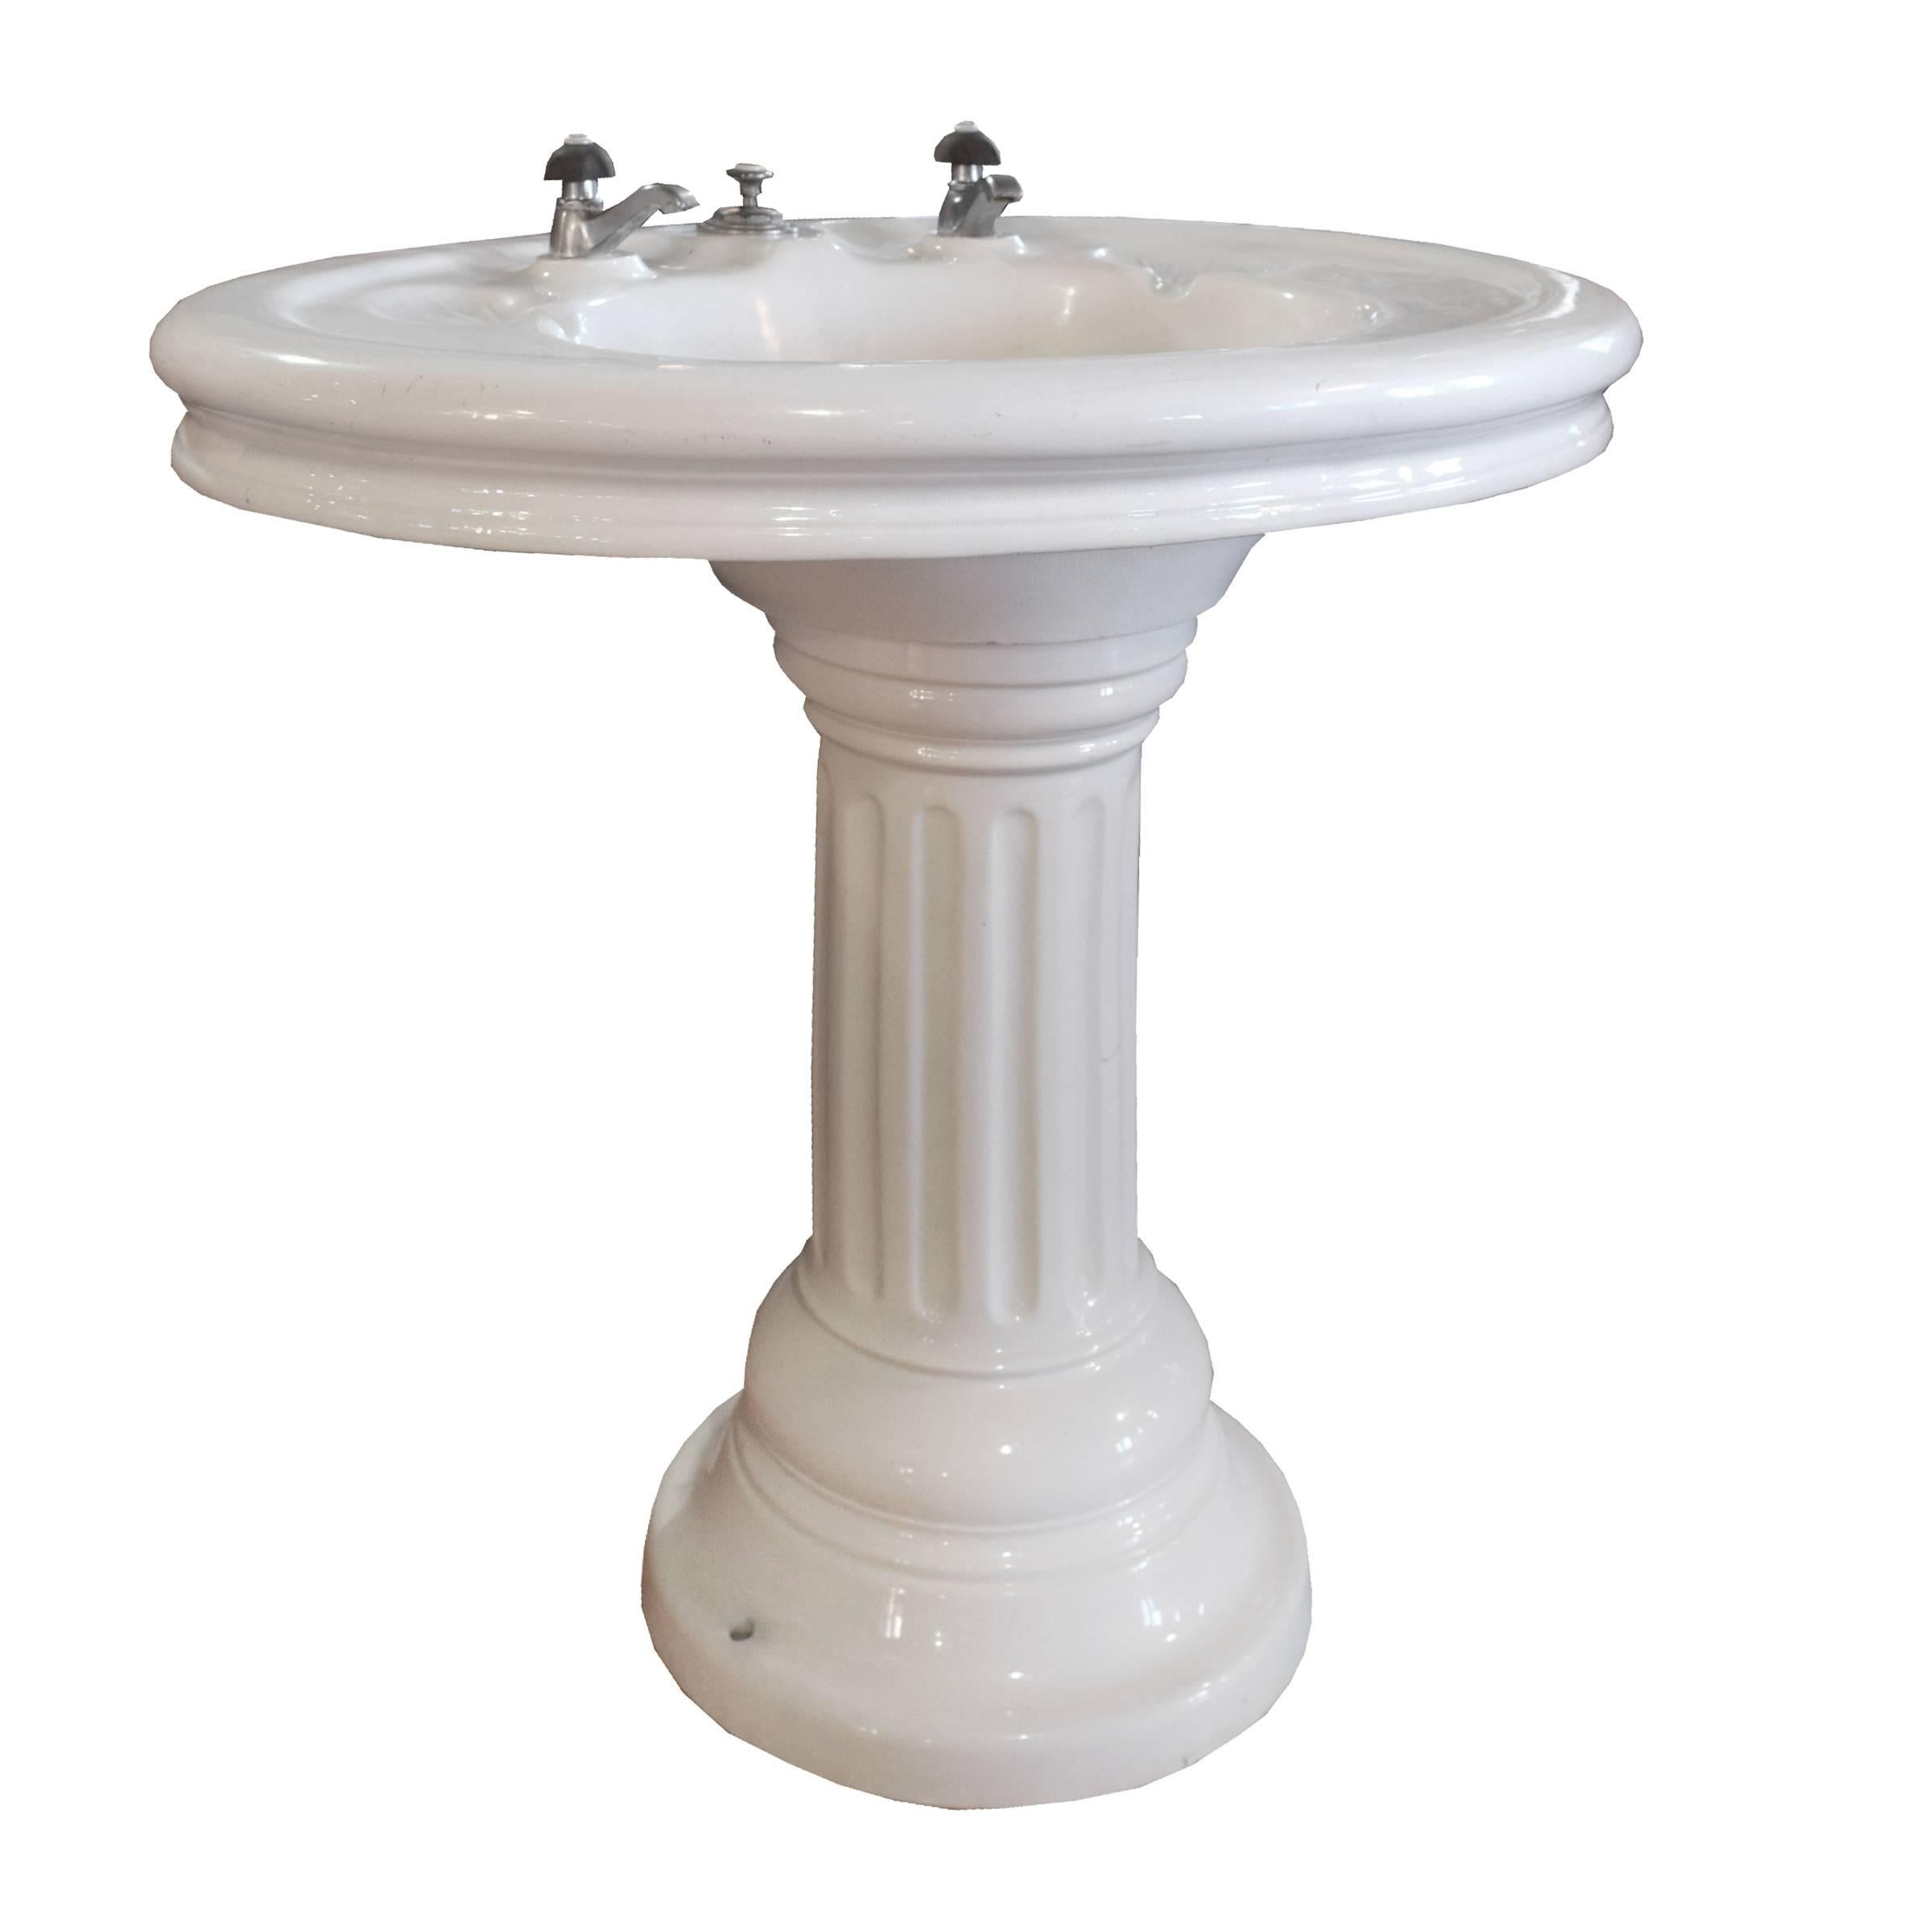 Great A Lovely French Porcelain Pedestal Sink With Two Shell Shaped Soap Holders,  Anconetti Of Paris